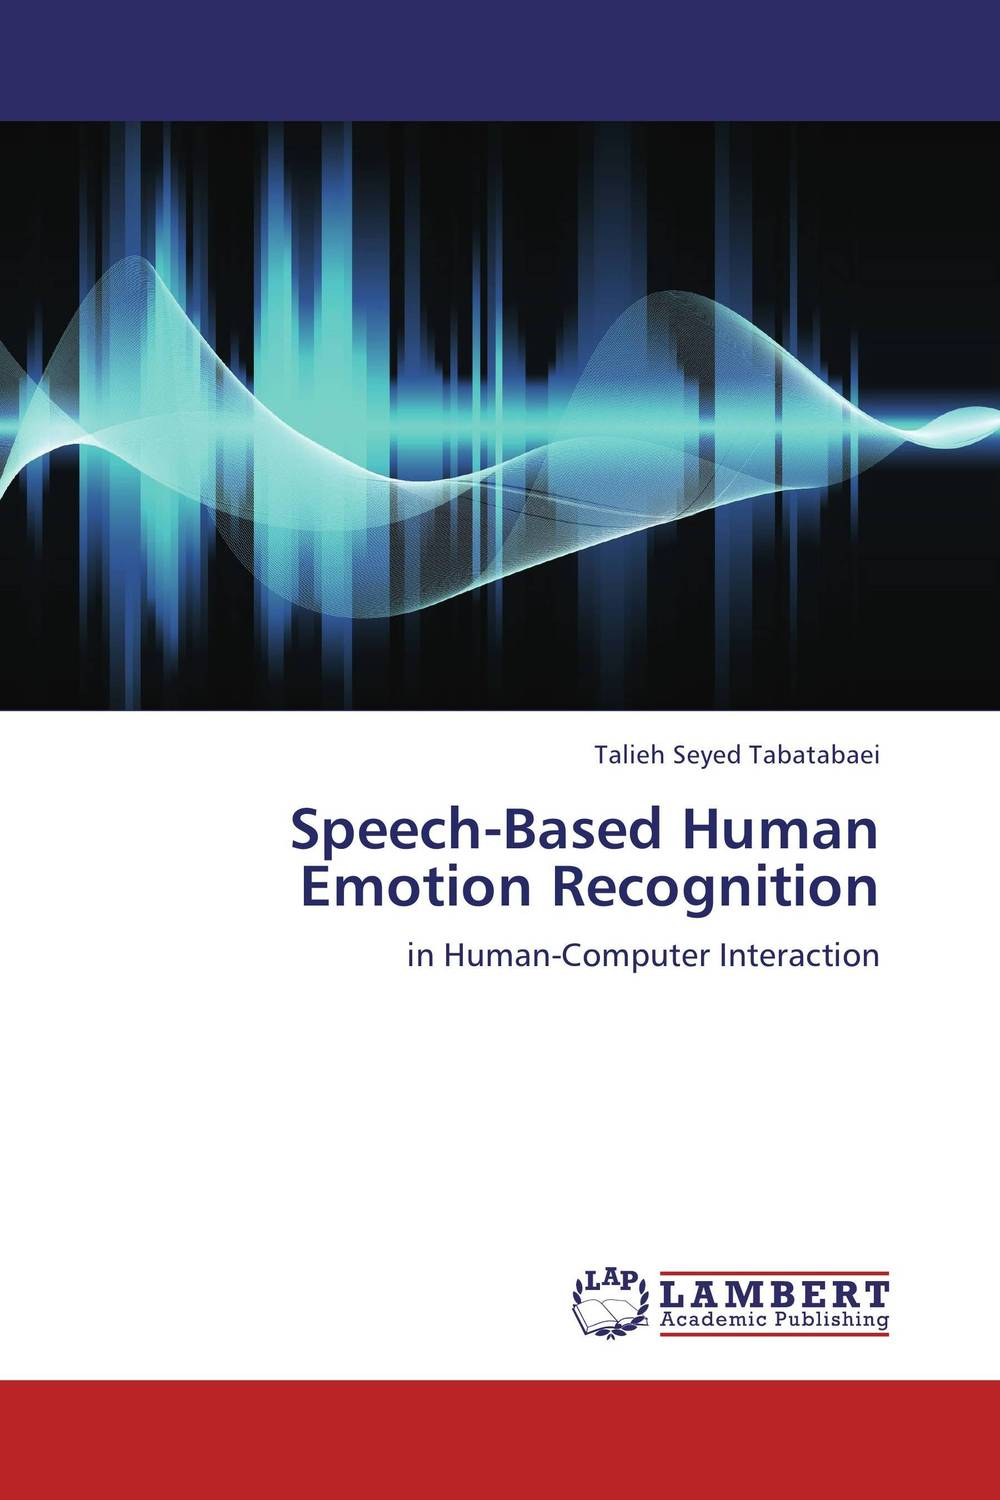 Speech-Based Human Emotion Recognition raymond s nickerson using computers human factors in information systems